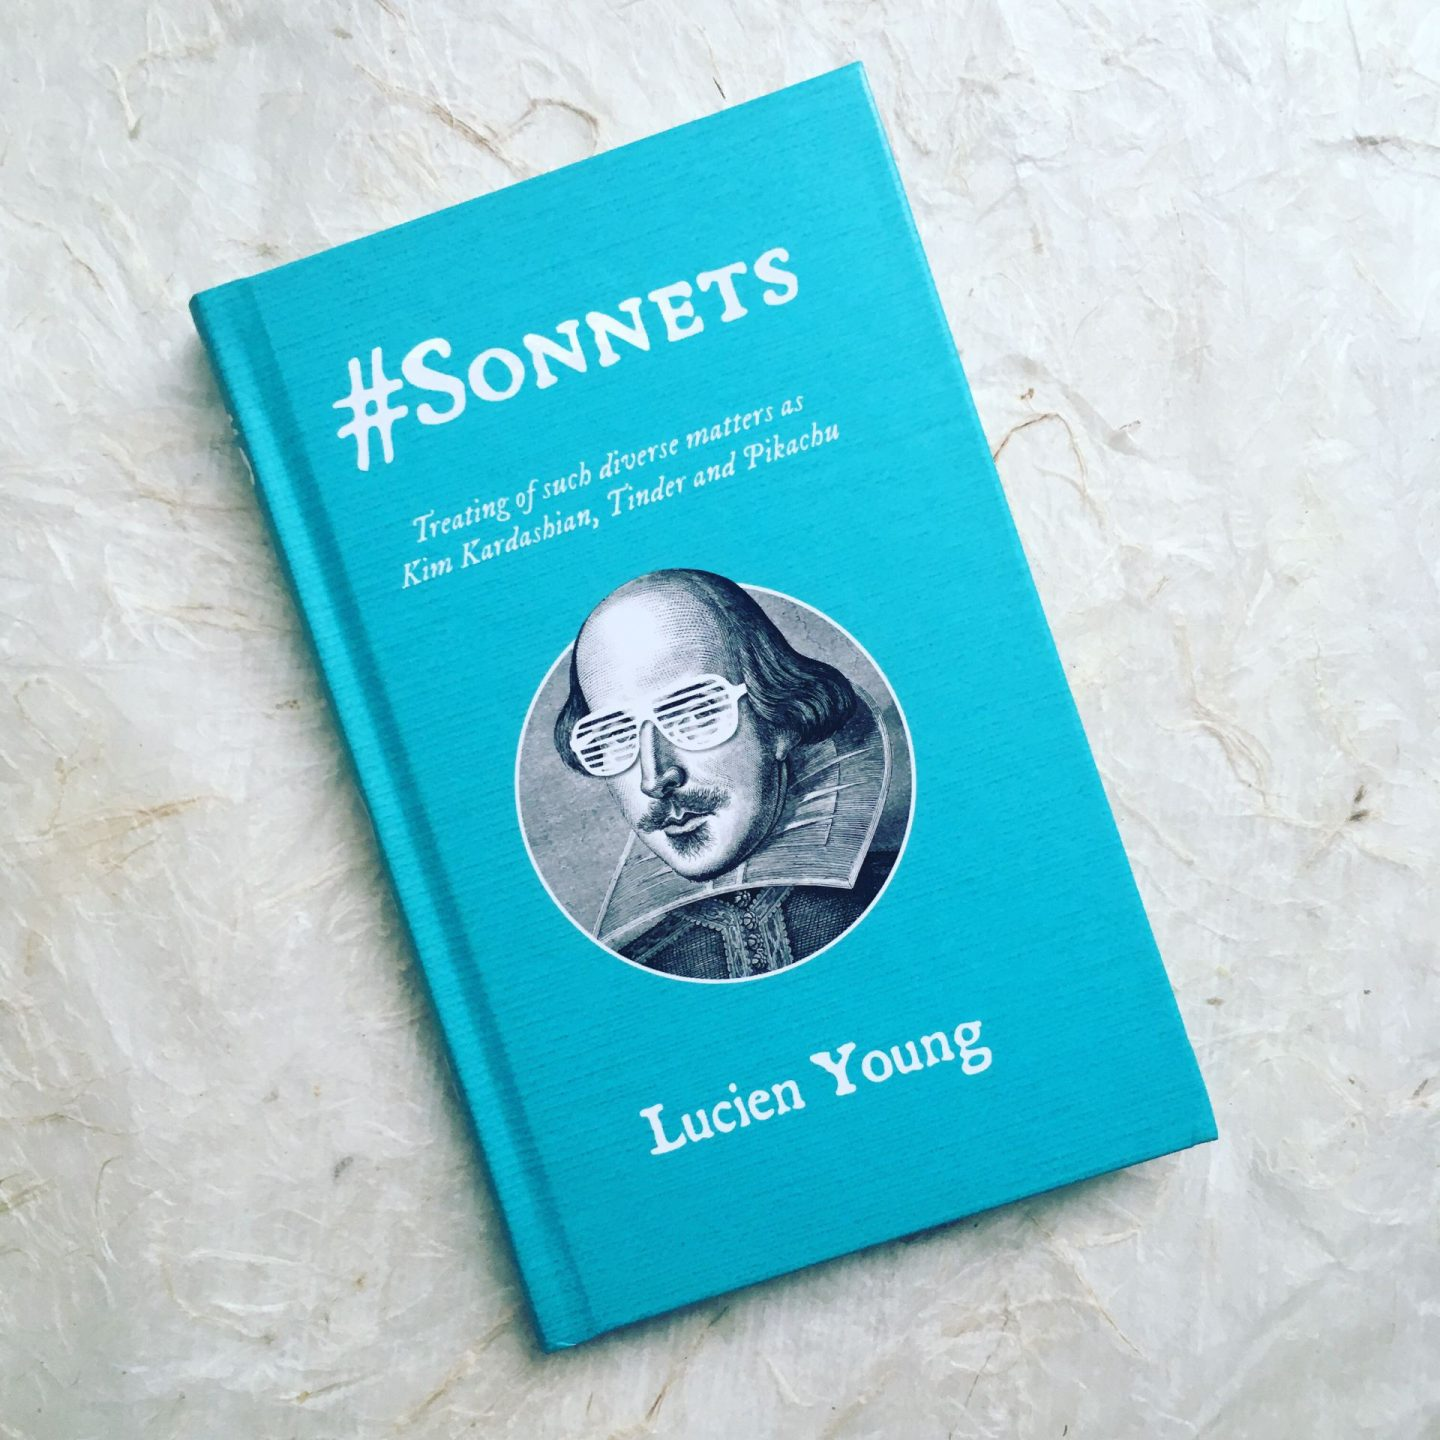 #Sonnets: sheer comedy